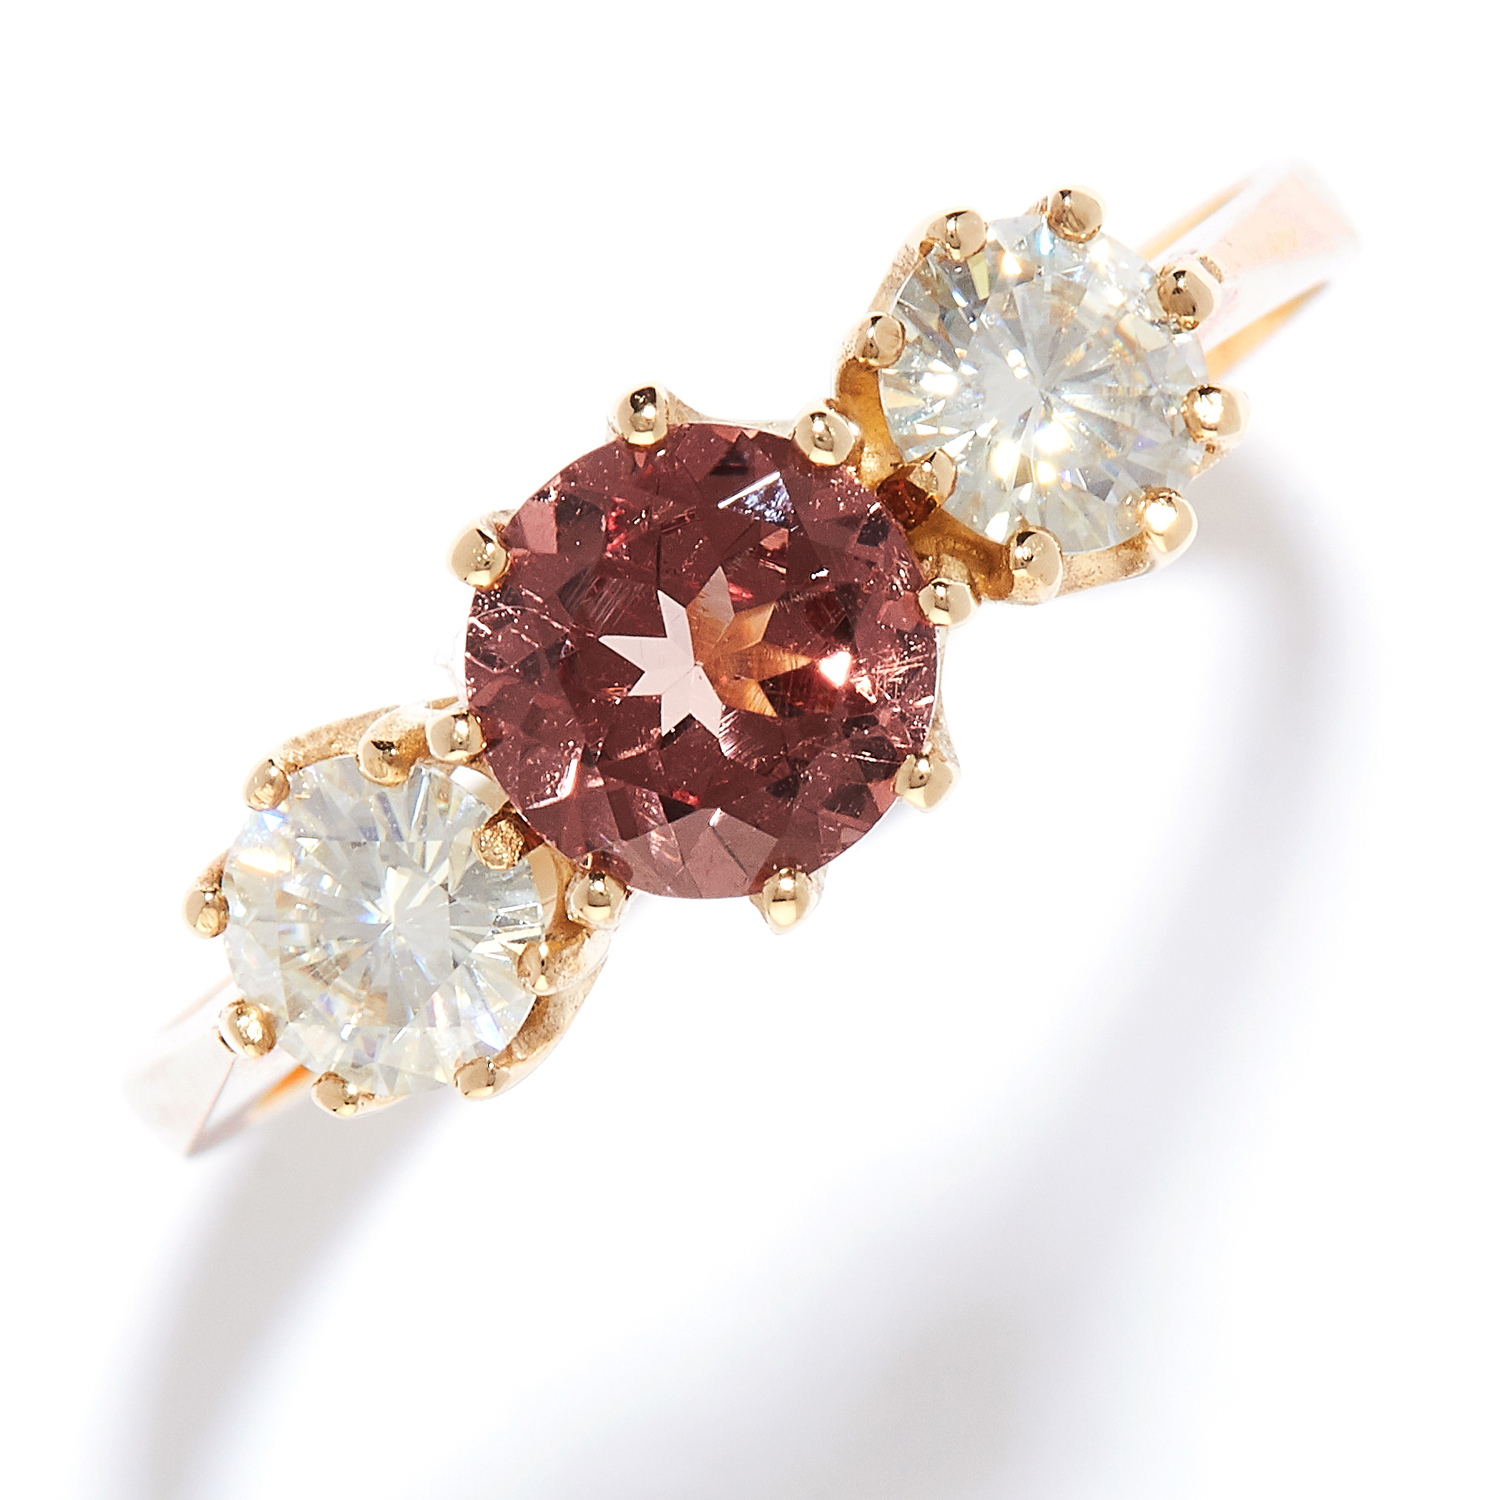 GARNET AND MOISSANITE THREE STONE RING in yellow gold, the round cut pink garnet of 1.0 carats